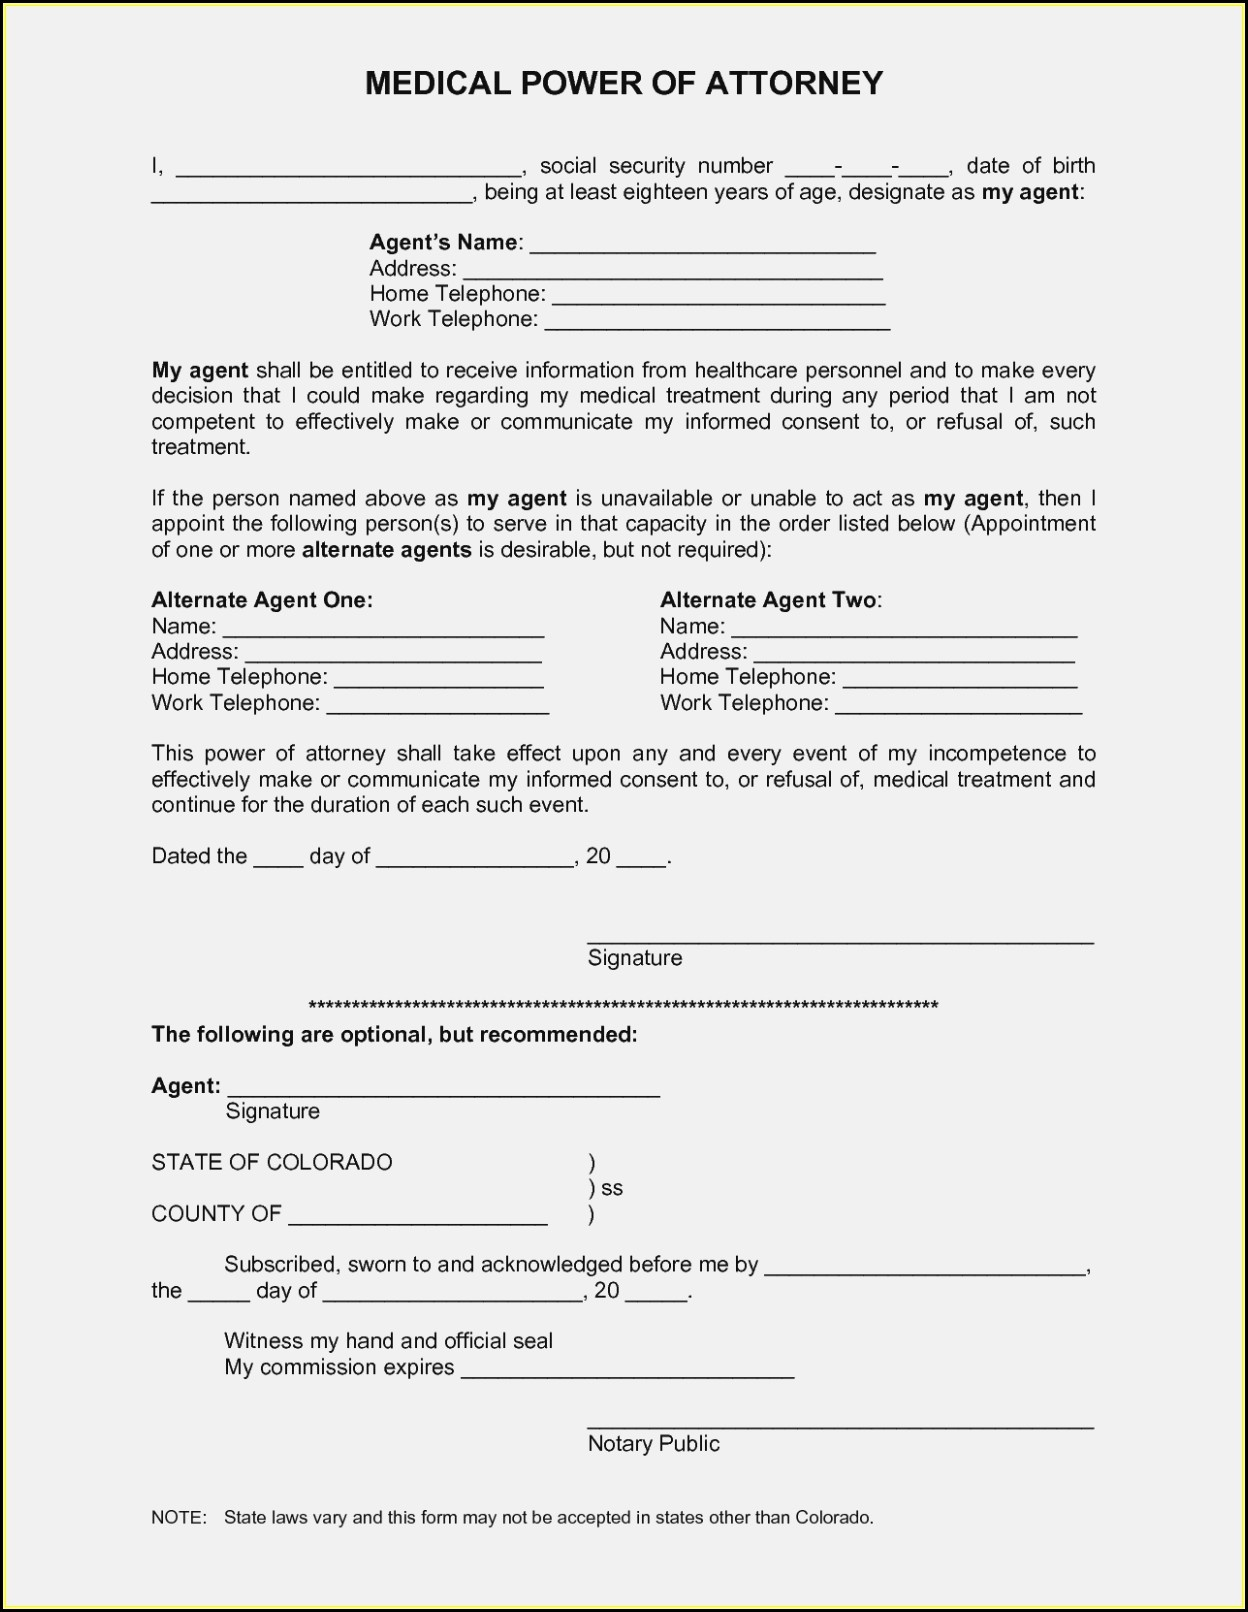 Free Printable Medical Power Of Attorney Forms - Form : Resume - Free Blank Printable Medical Power Of Attorney Forms